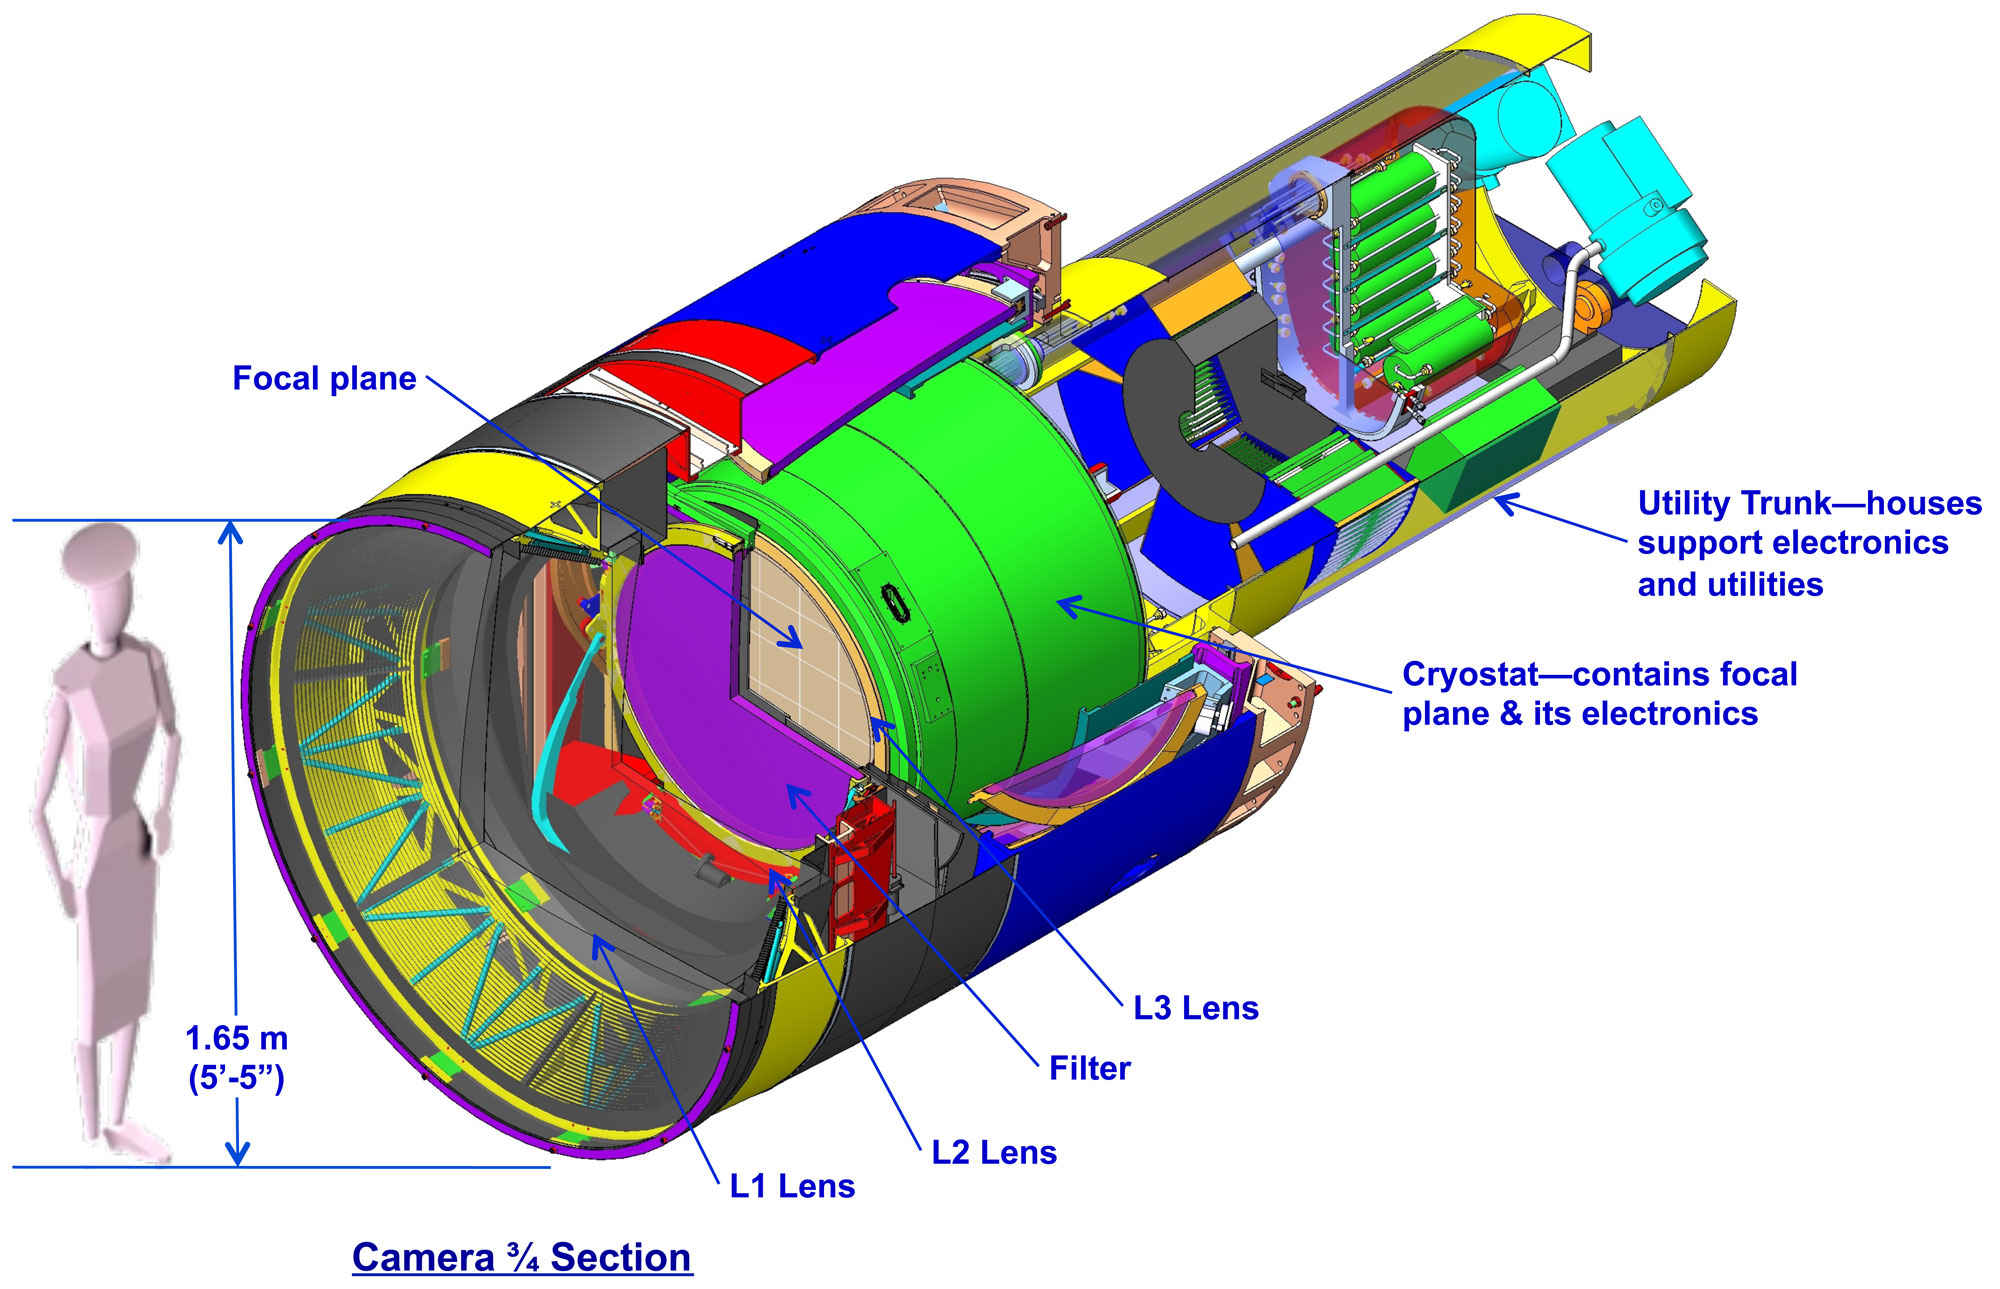 The 3 Gigapixel camera used in the Large Synoptic Survey Telescope (LSST) is one of the largest ever made. It will produce about 15 terabytes of data per night. The LSST will be an evolution in detecting asteroids around Earth. Credit: LSST Corporation.